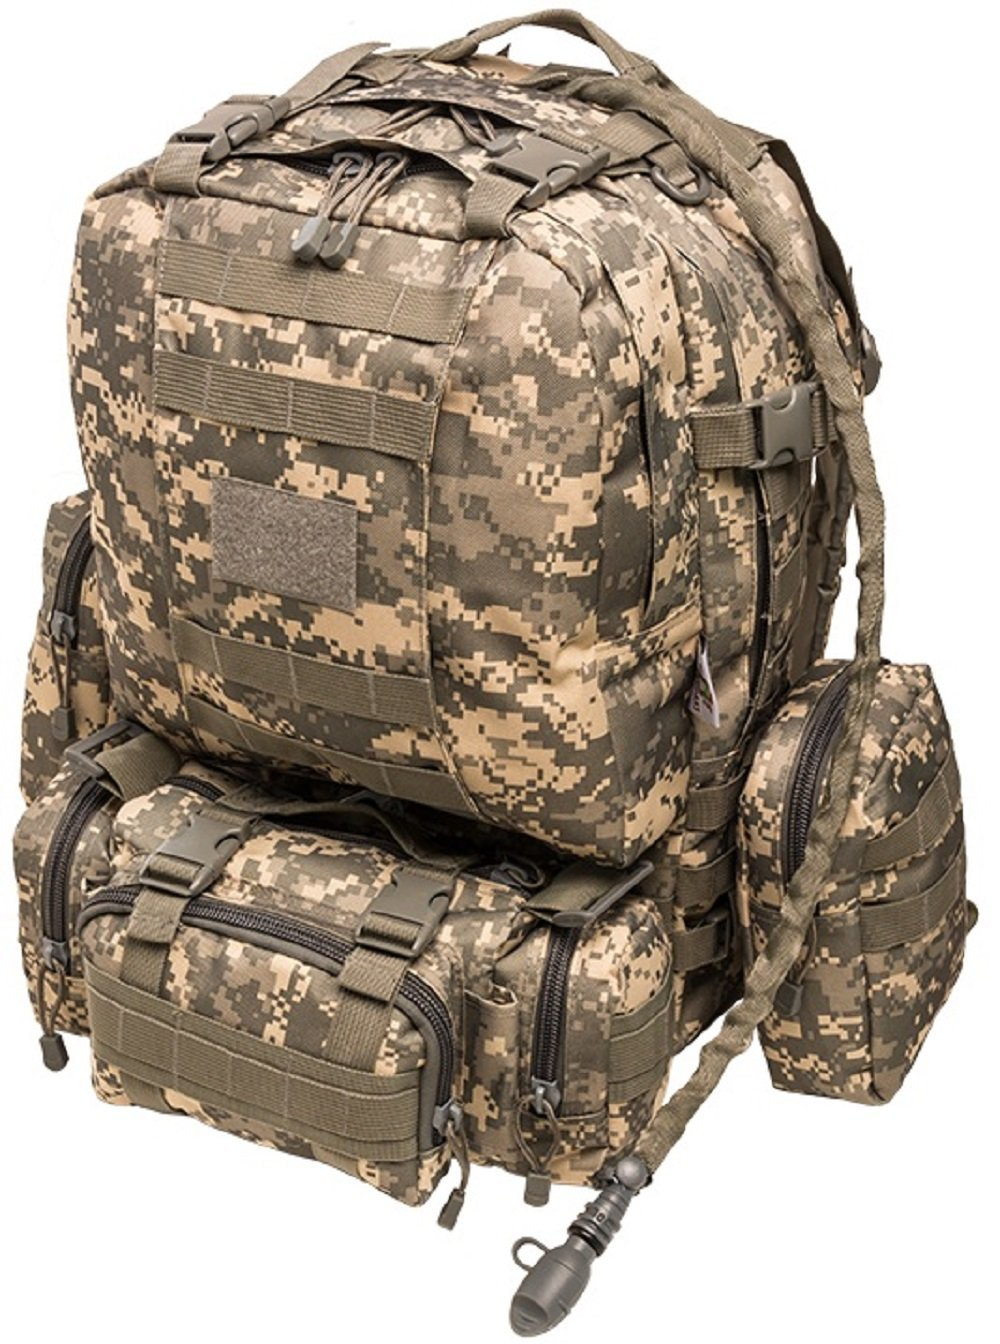 Monkey Paks Tactical Backpack Bundle